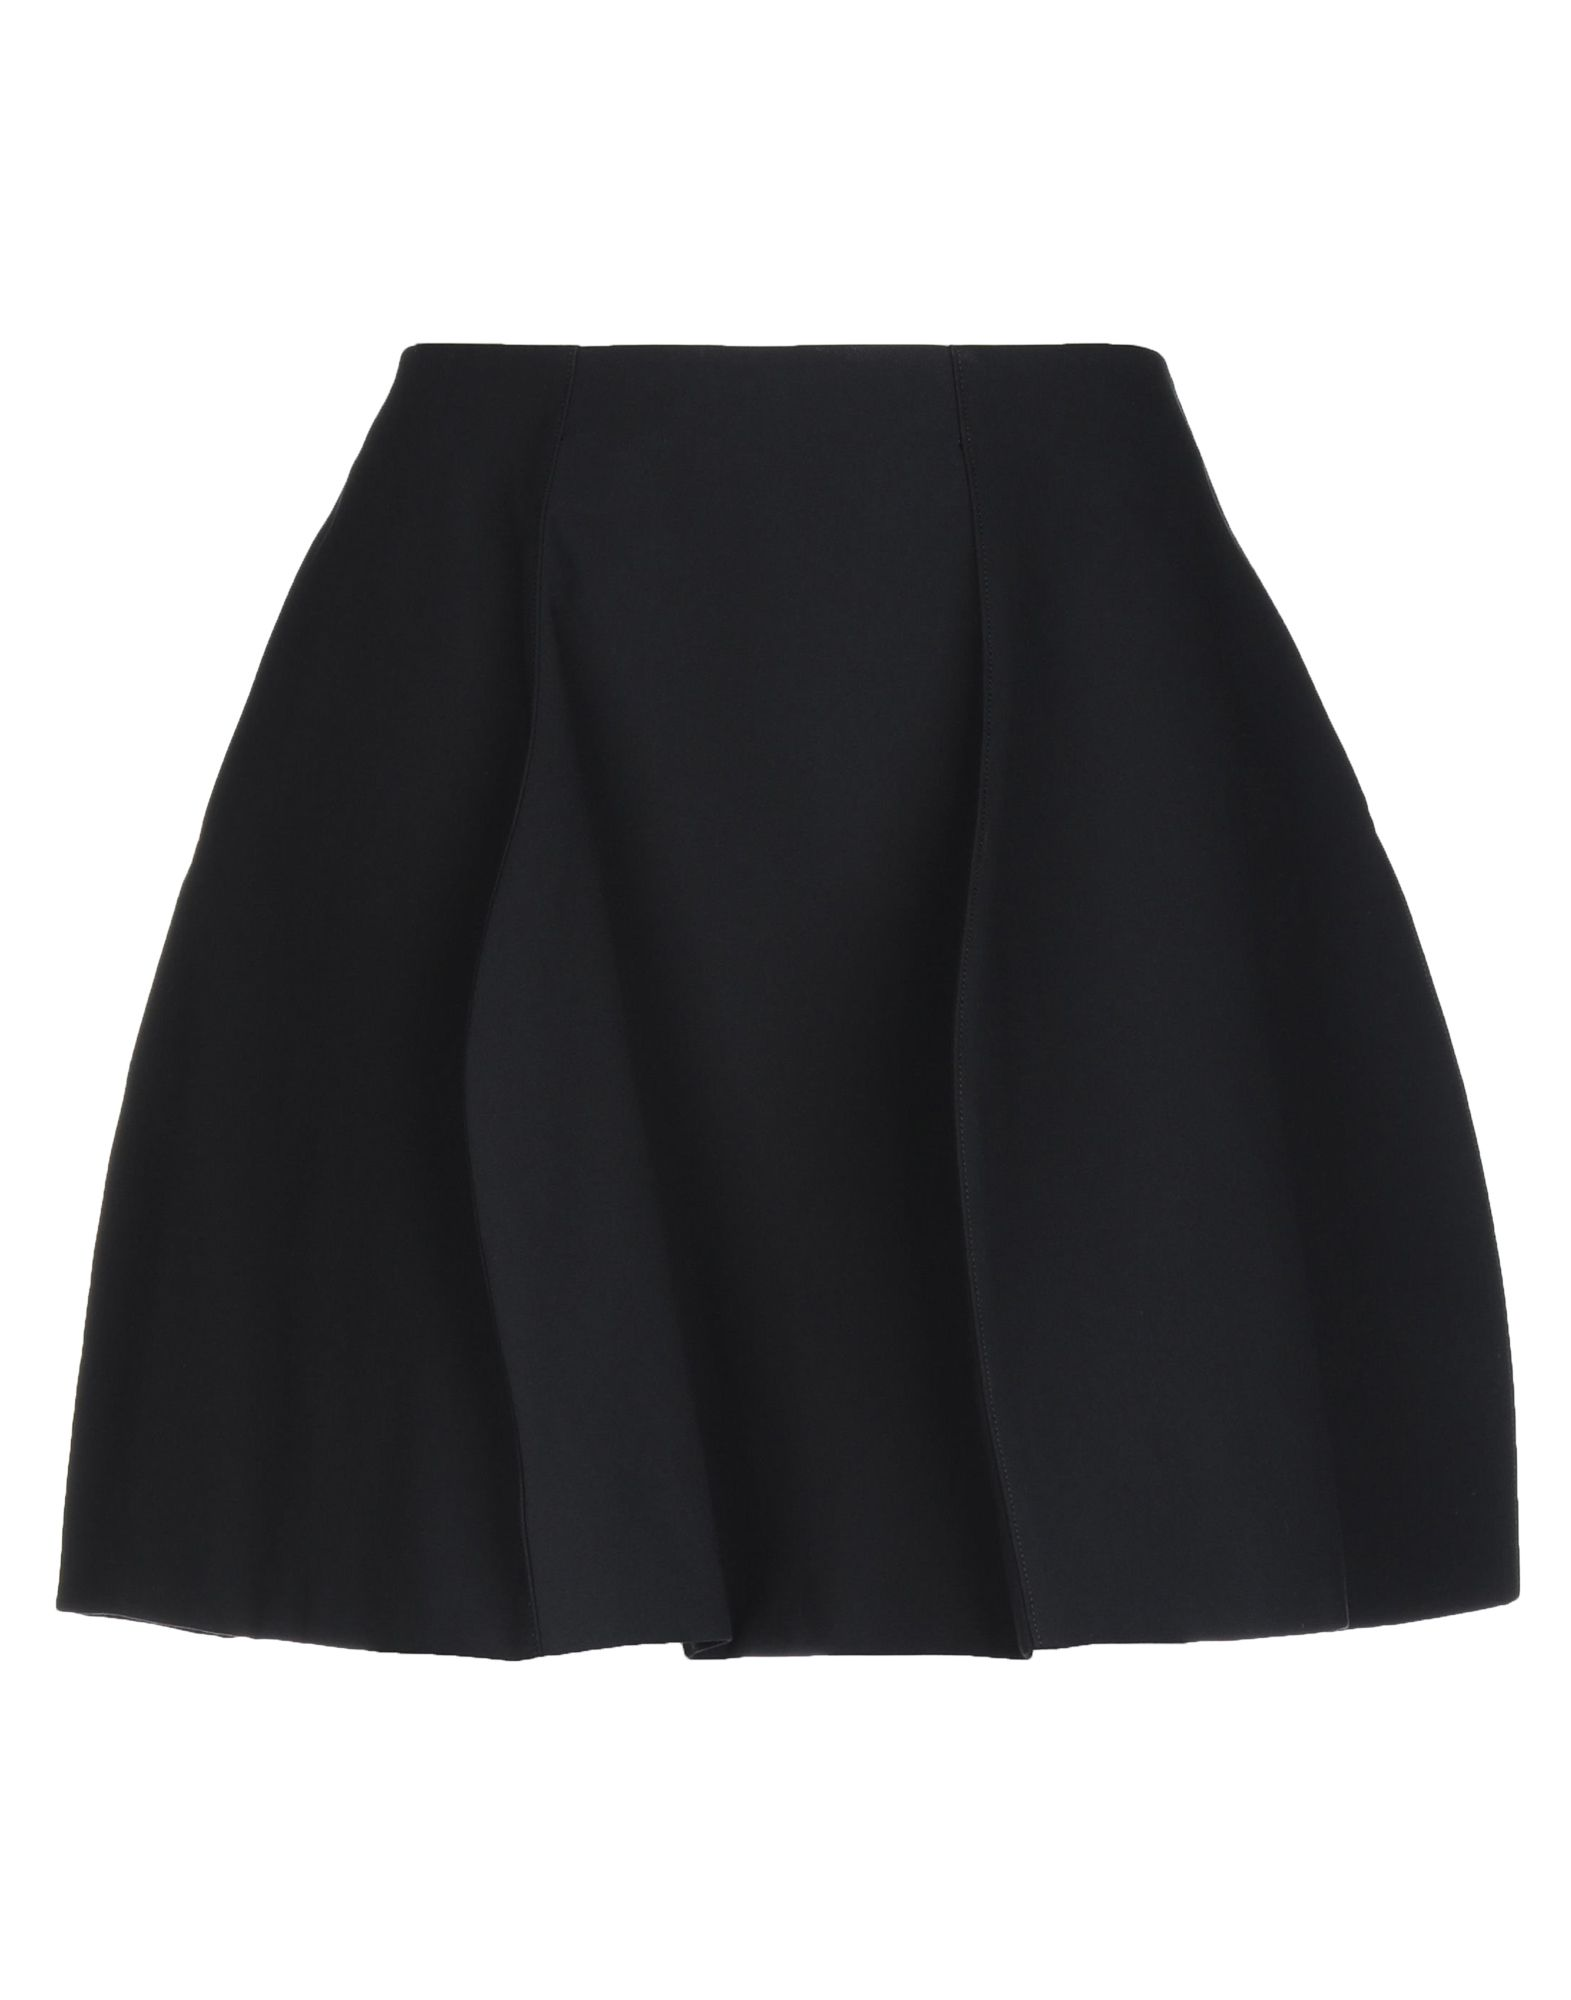 JIL SANDER Mini skirts. twill, folds, basic solid color, no pockets, side closure, snap button fastening, fully lined, large sized. 100% Cotton